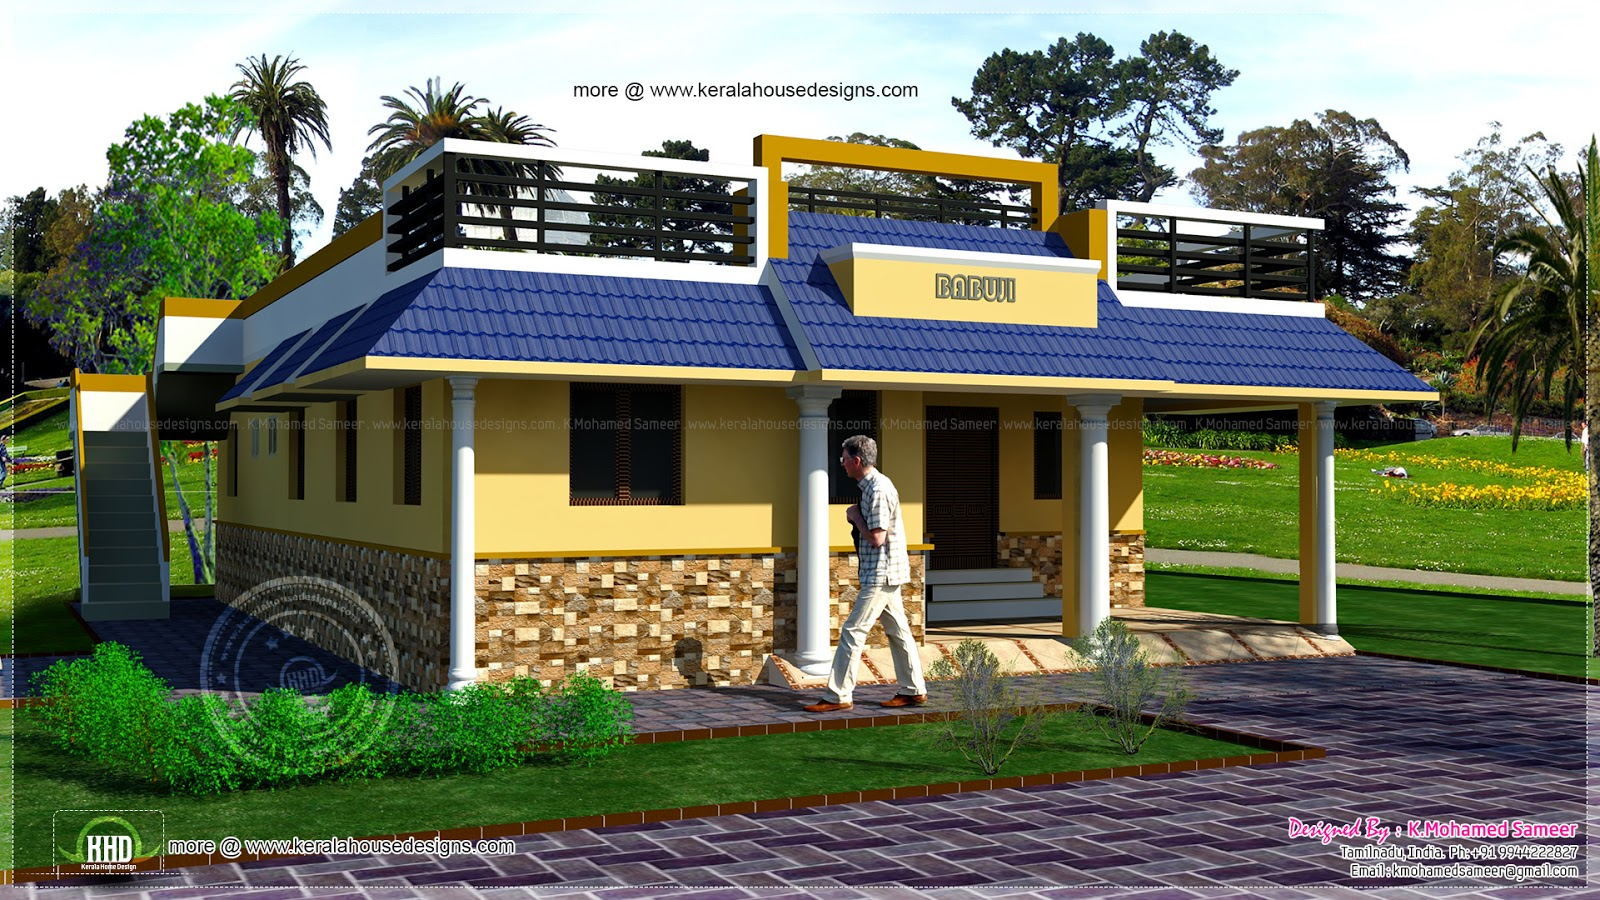 3 bedroom single floor house plan kerala home design and for Tamilnadu home design photos